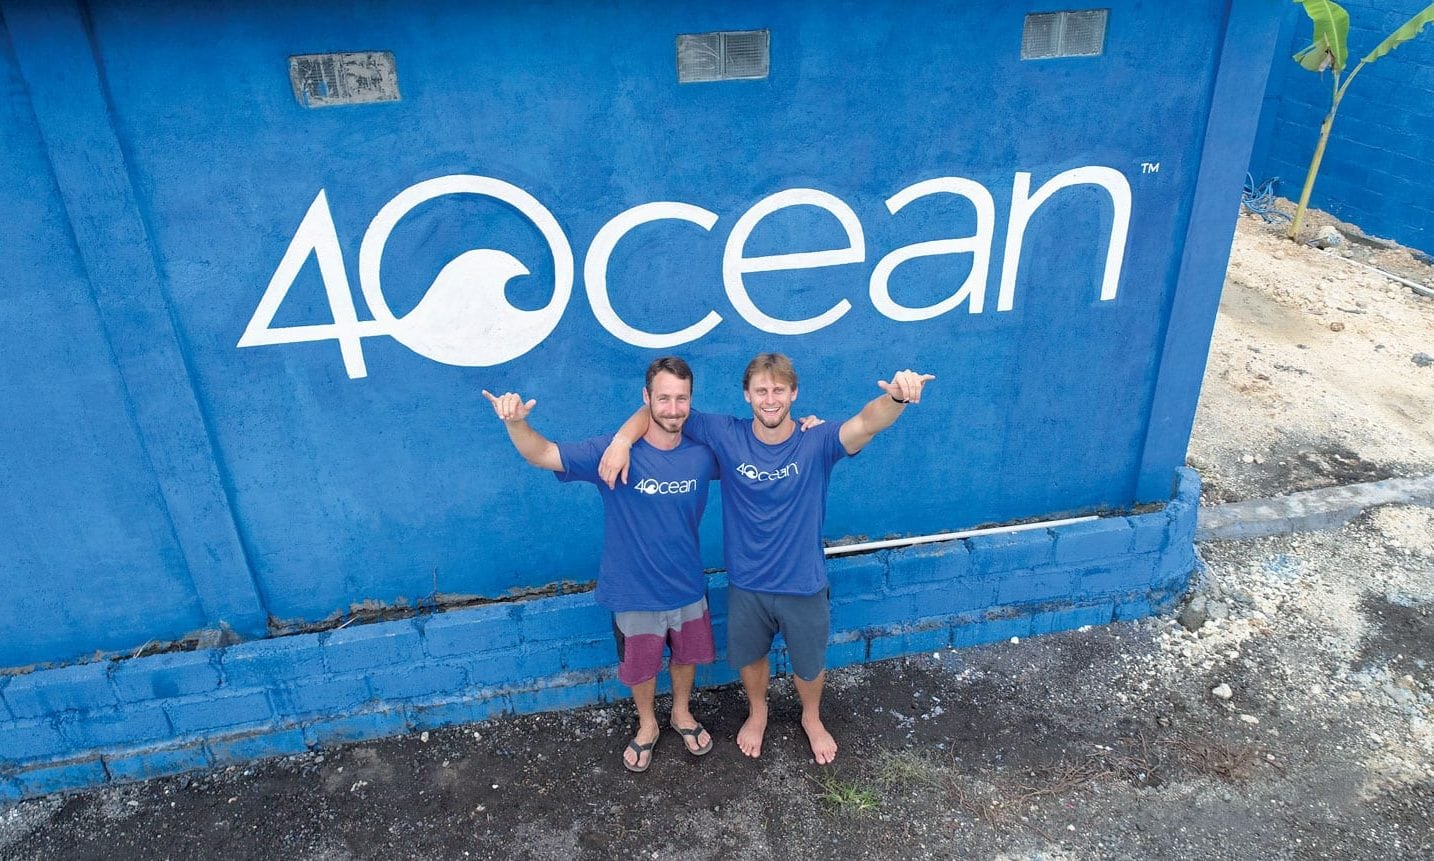 Andrew Cooper and Alex Schulze, co-founders of 4Ocean.com. Courtesy: 4Ocean.com